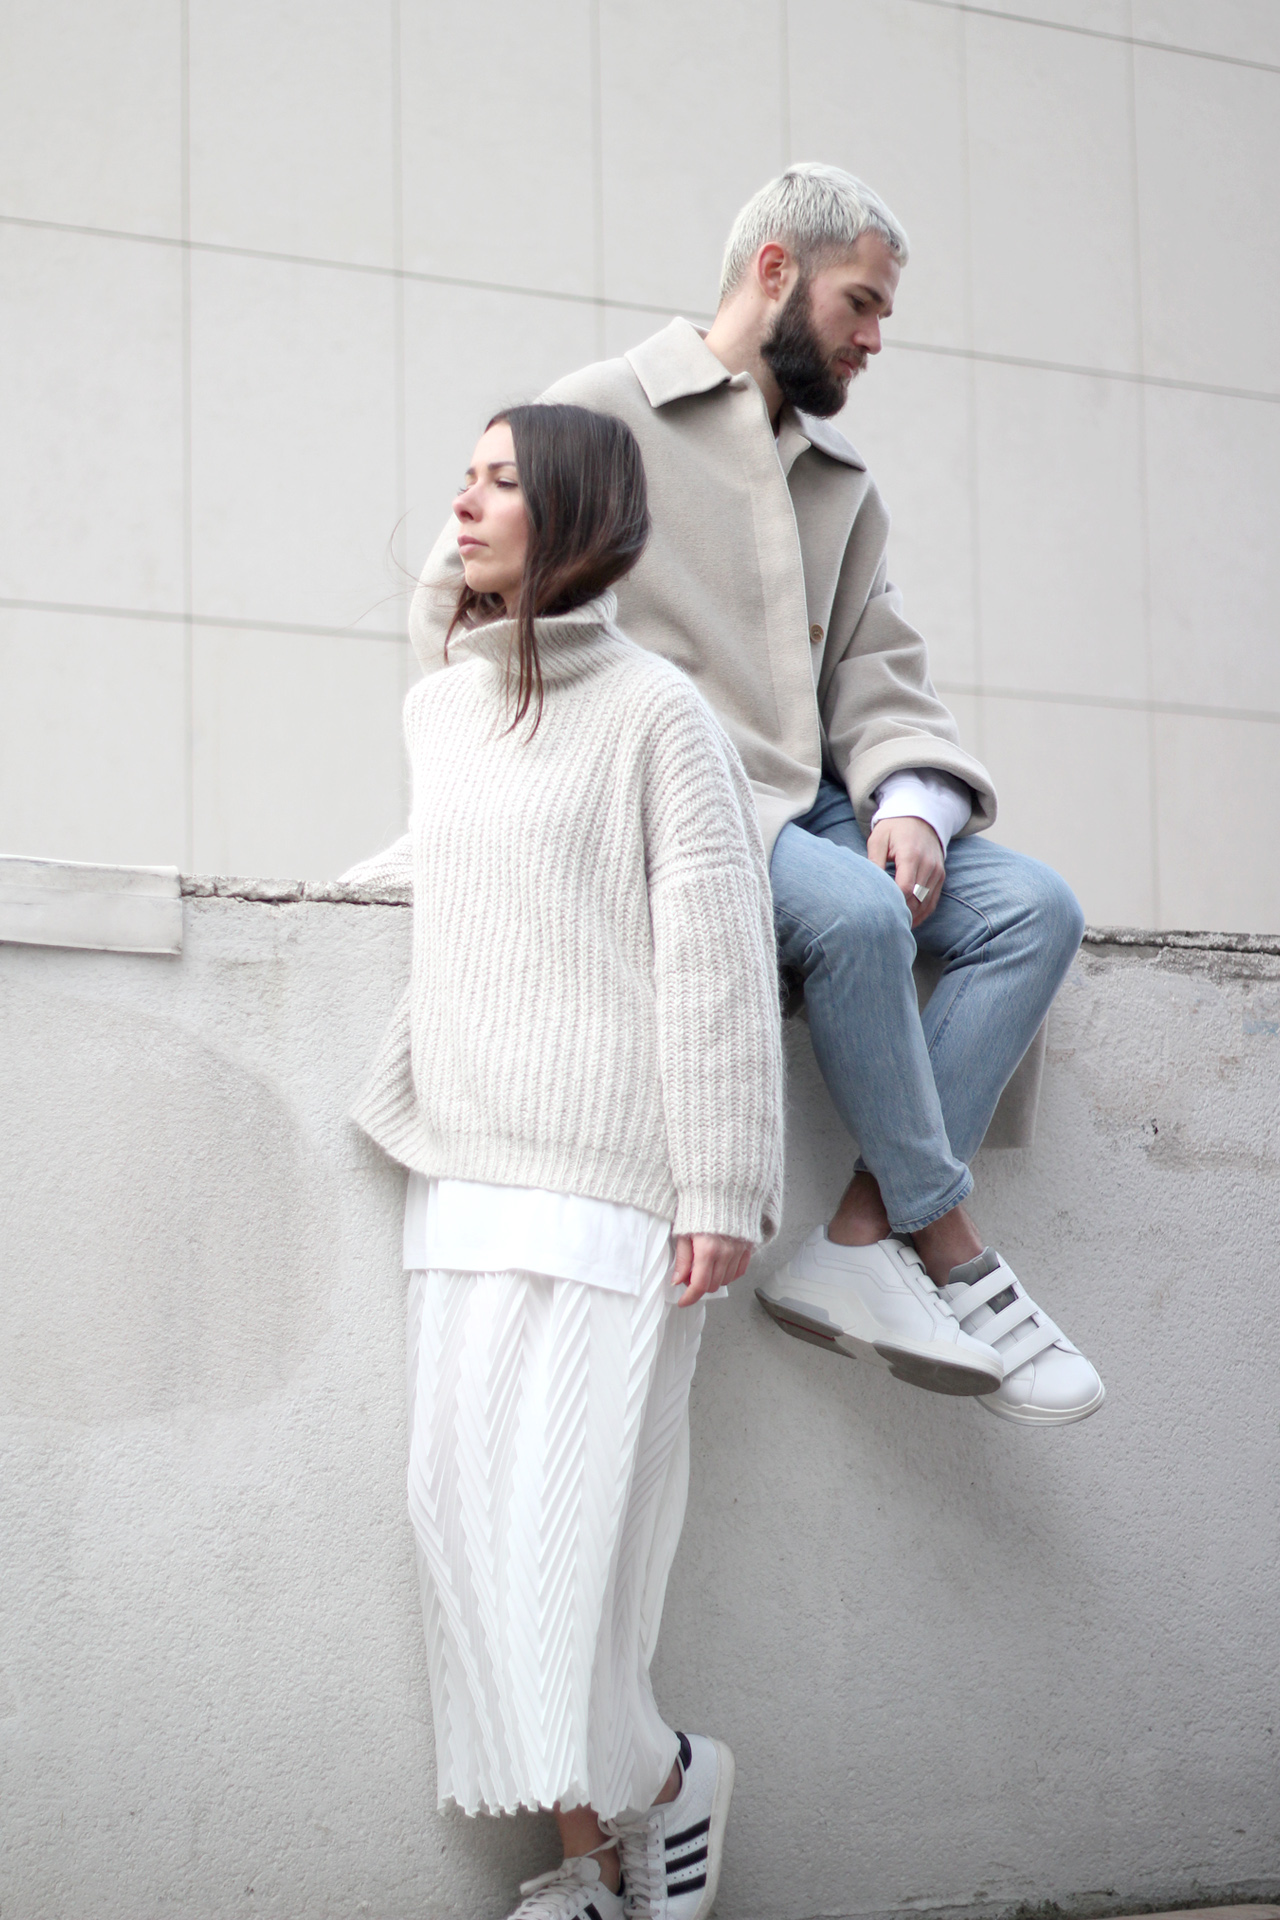 BLOG MODE COUPLE PARIS FASHION_0001_Niveaux 4 copie